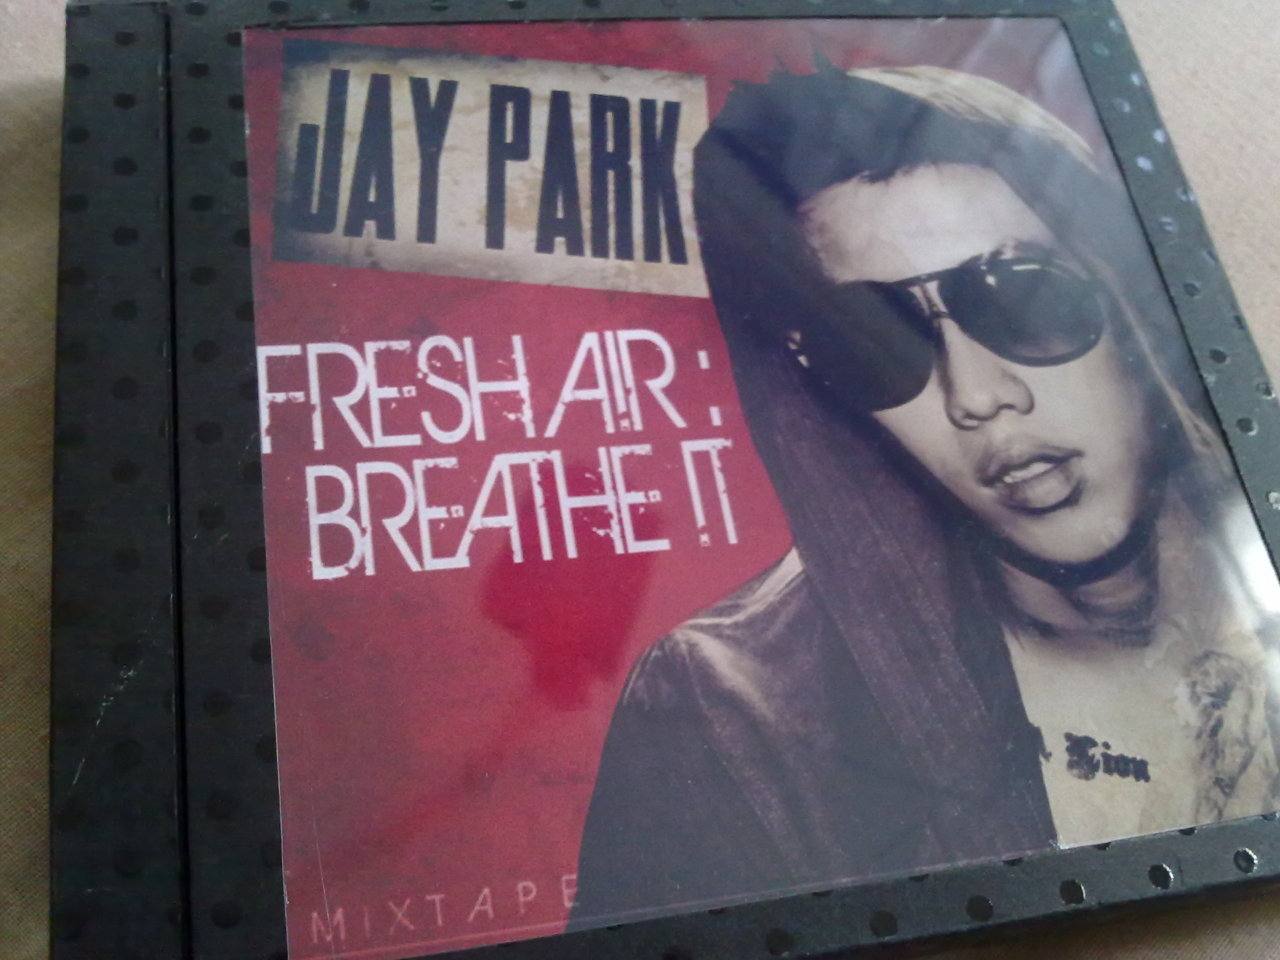 myelinatednewbreed:  home made fresh air breathe it album. xDDD  That's sooo awesome! I want to make one now too!